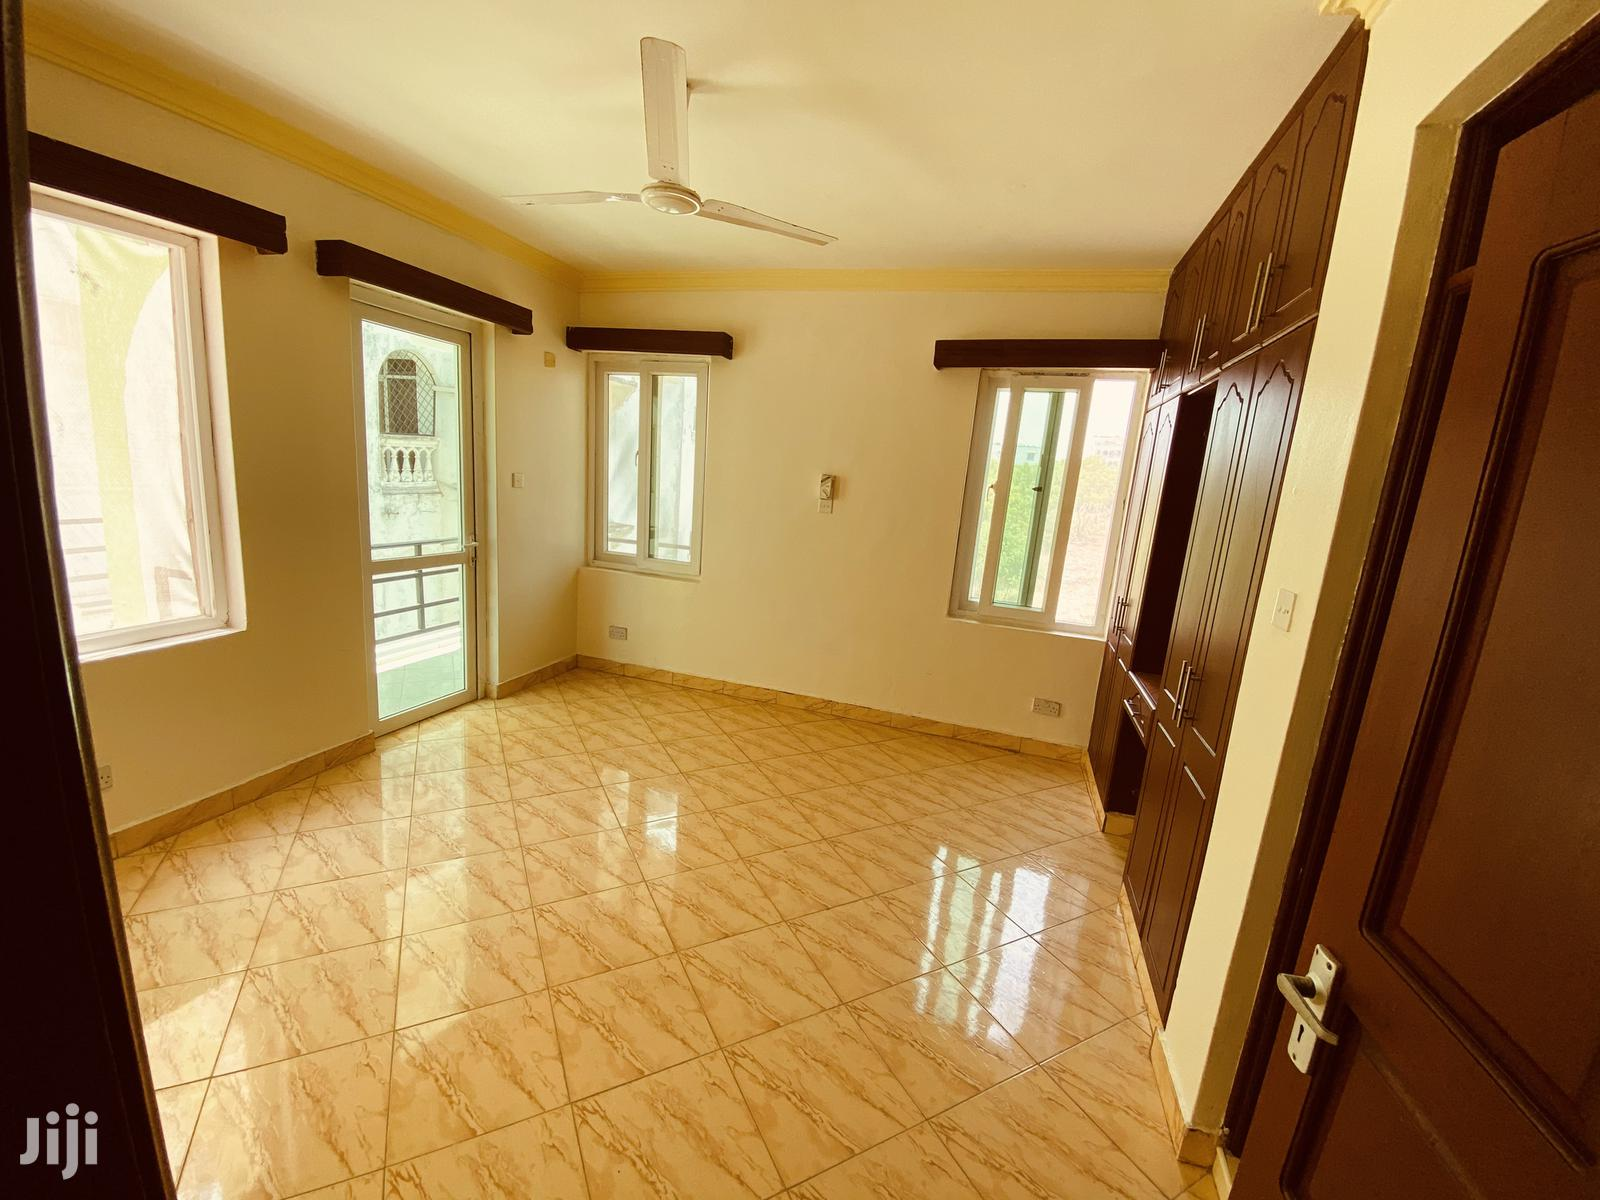 Outstanding 3 Bedroom Apartment With 24hr Security | Houses & Apartments For Rent for sale in Nyali, Mombasa, Kenya